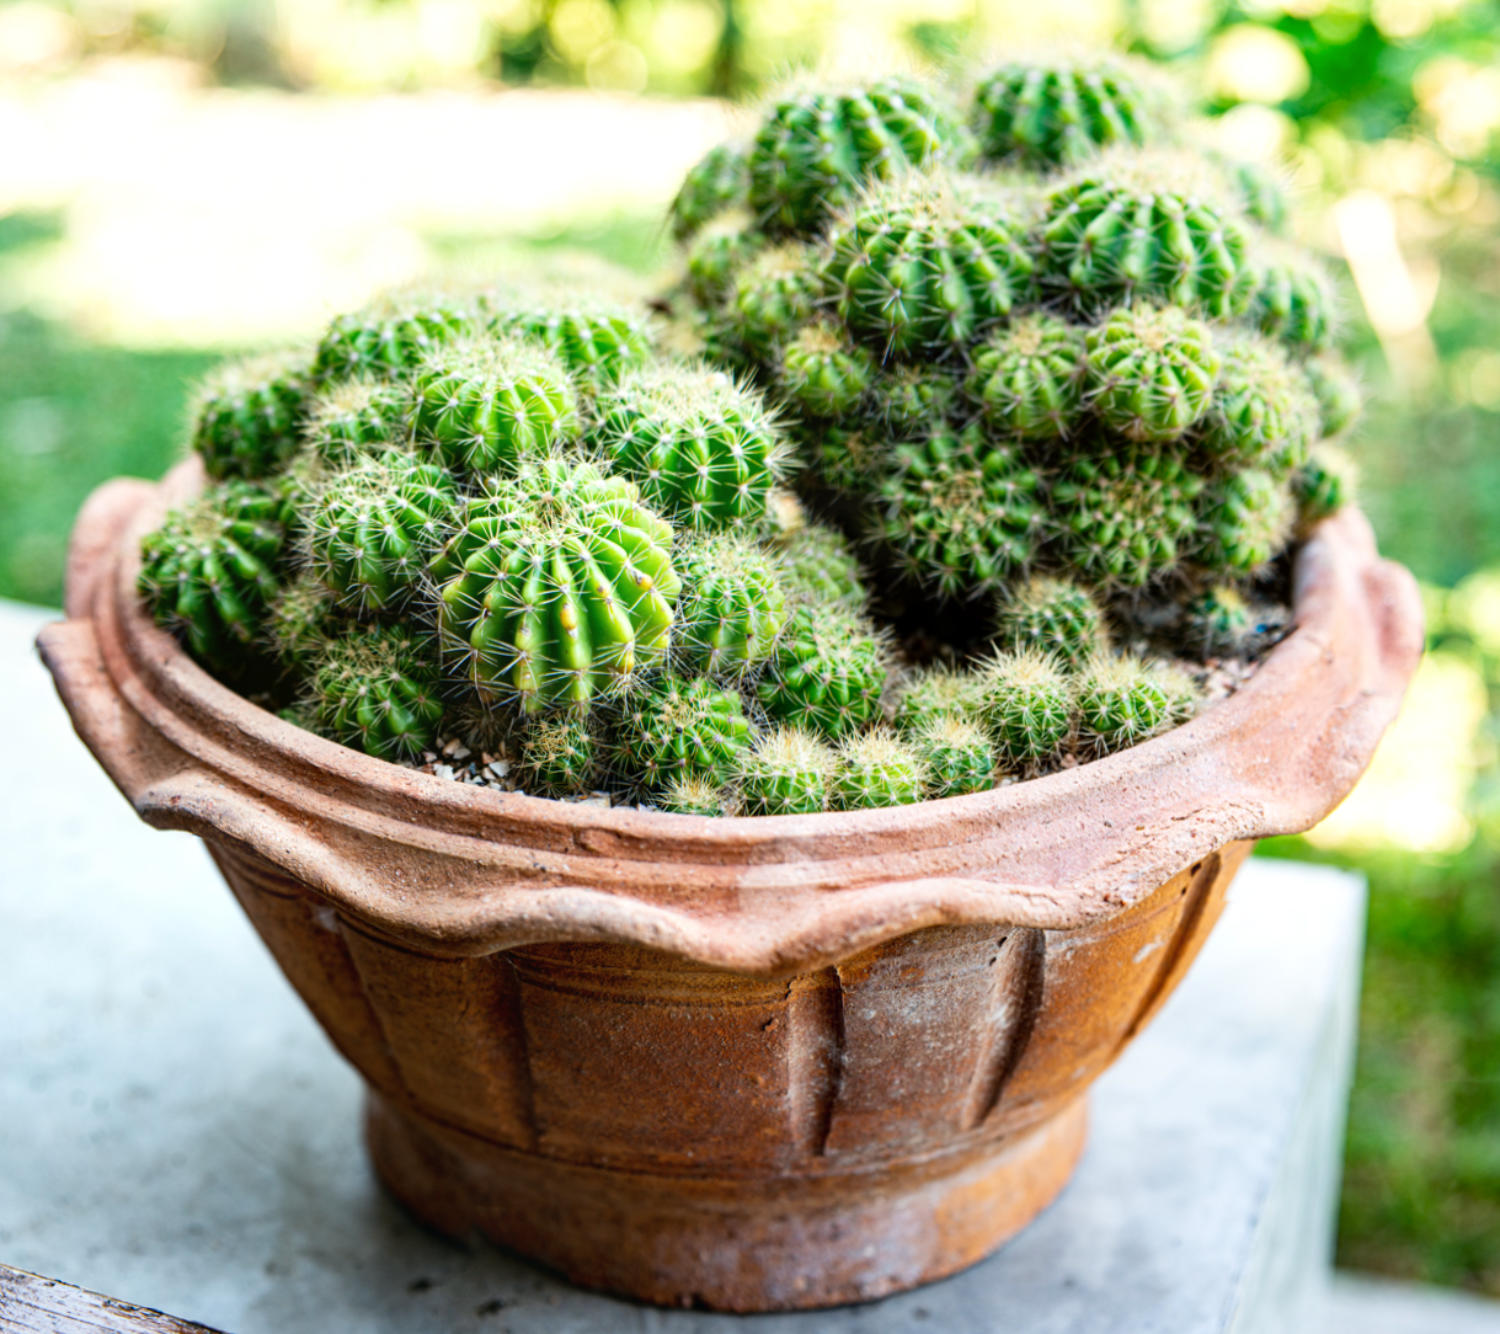 cactus plants in a pot